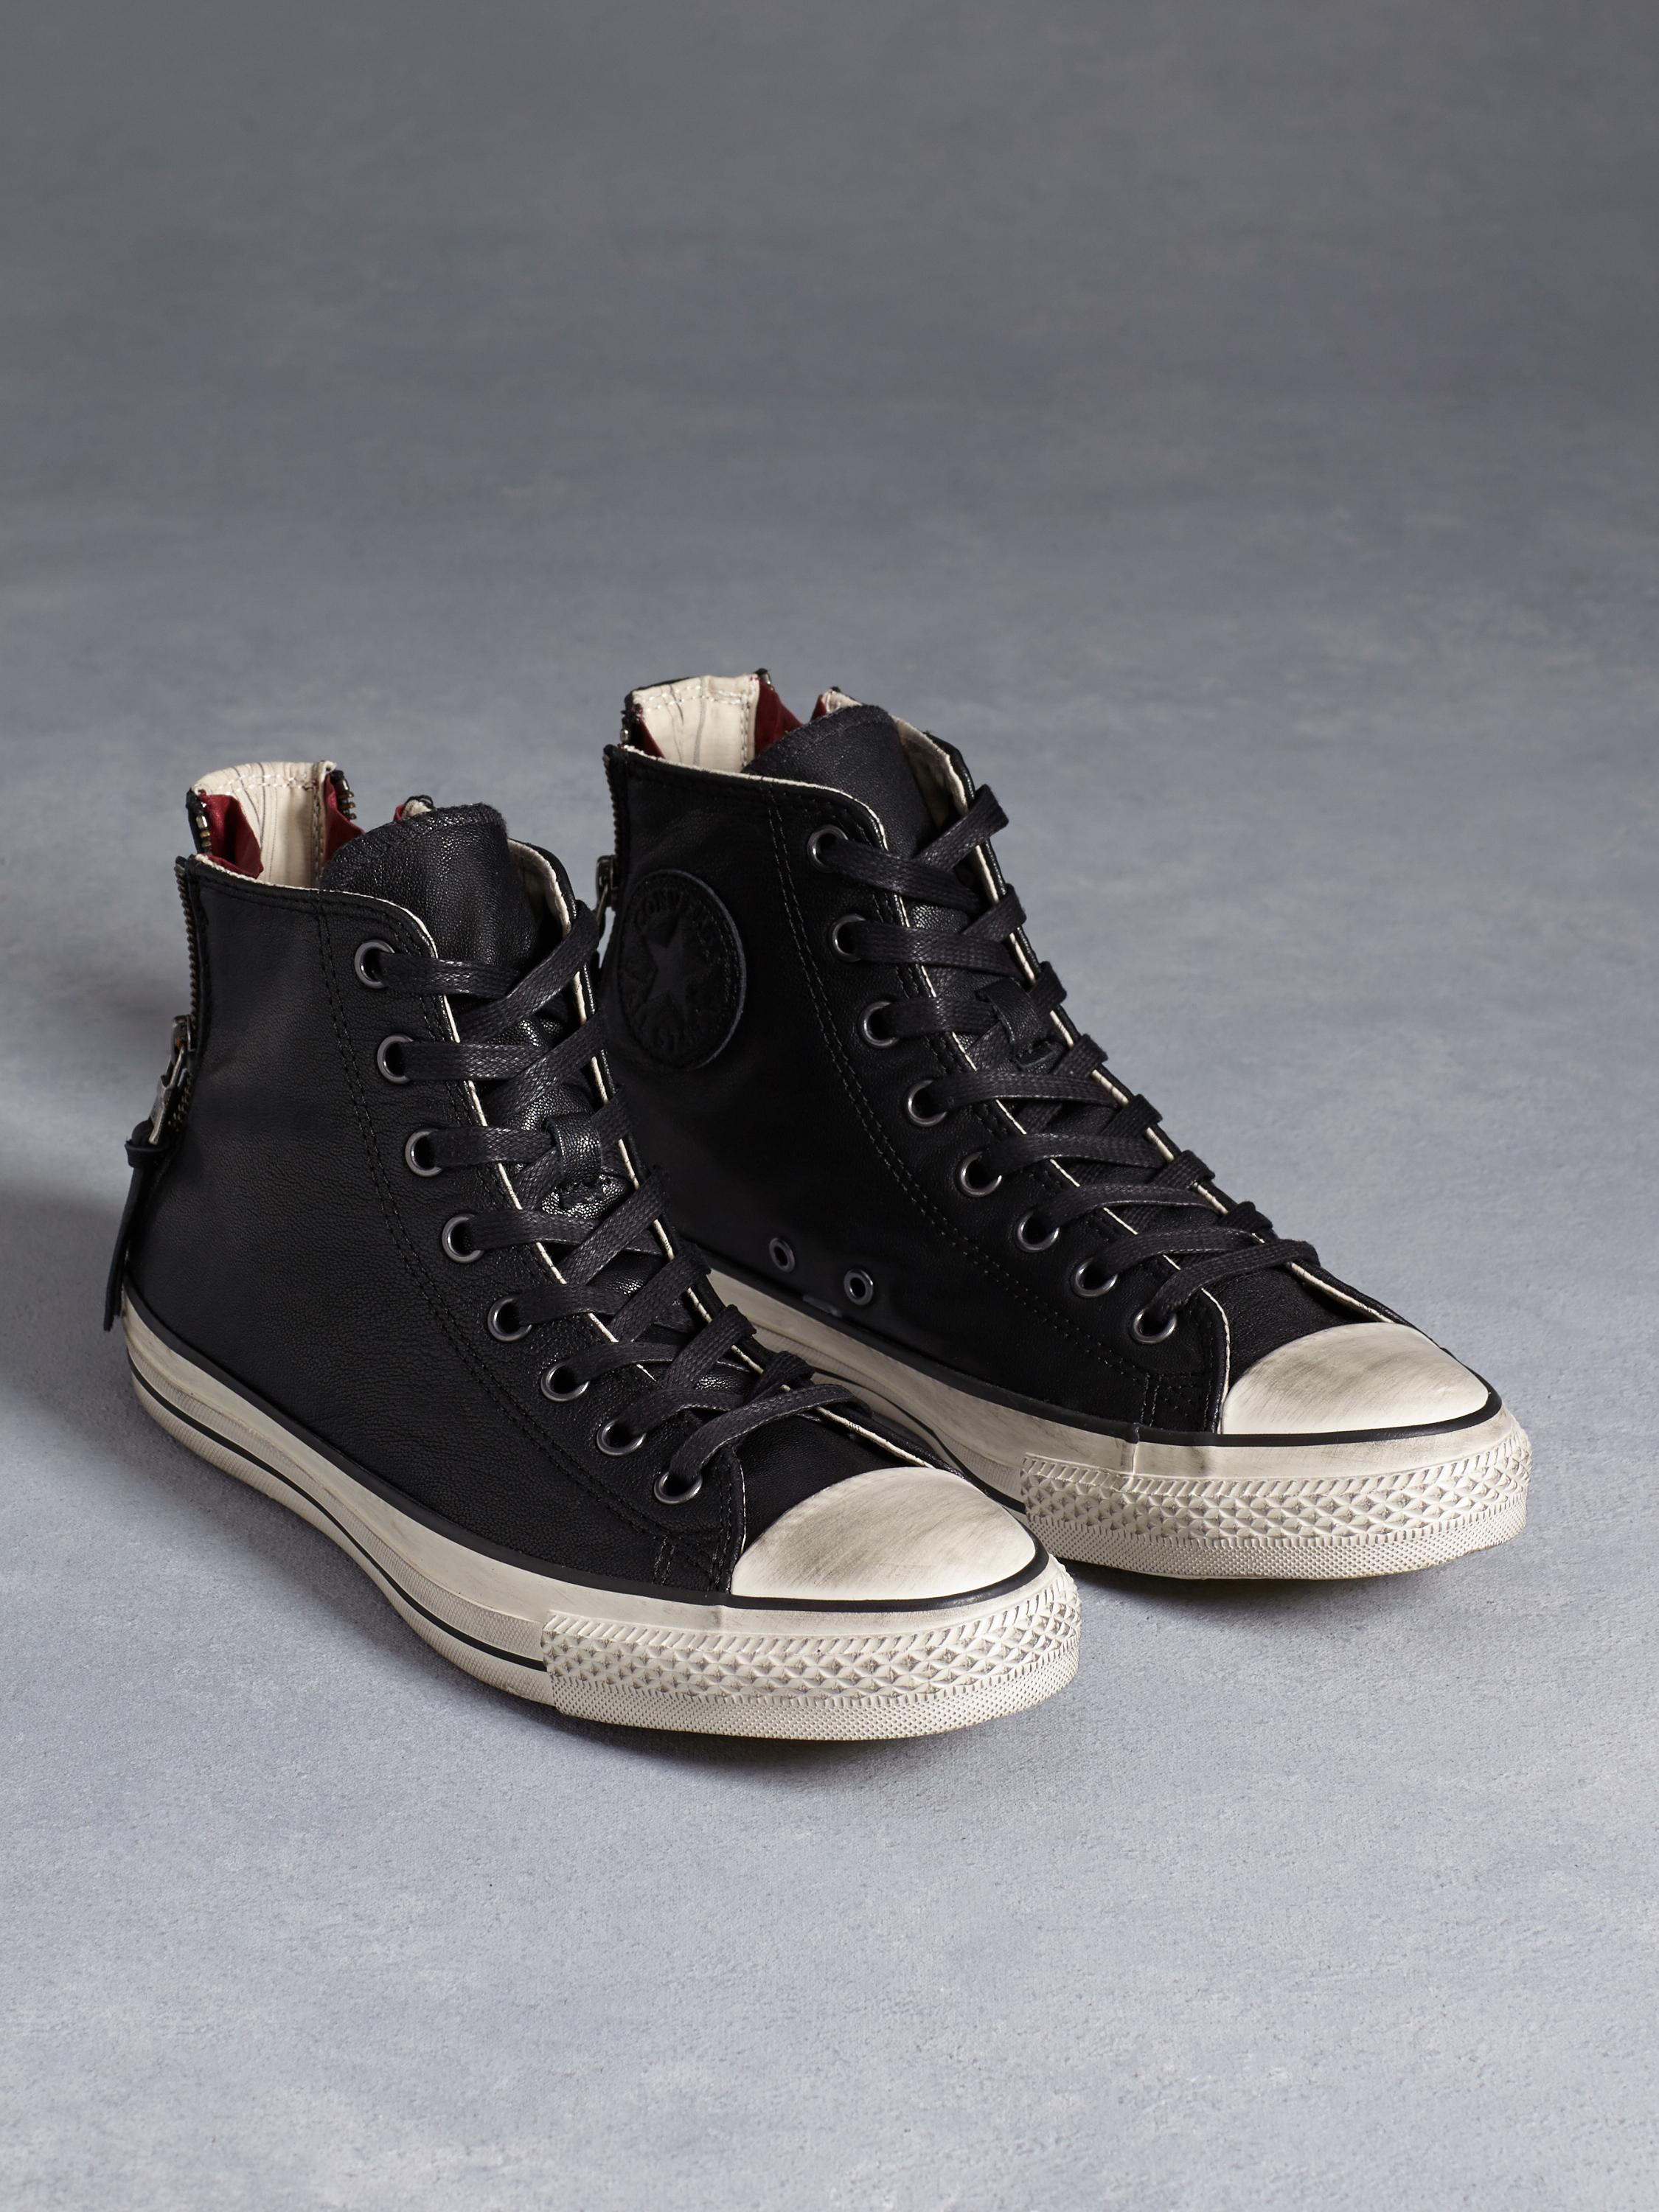 4c721732ad039d Lyst - John Varvatos All Star Quito Leather Double Heel Chuck Taylor ...